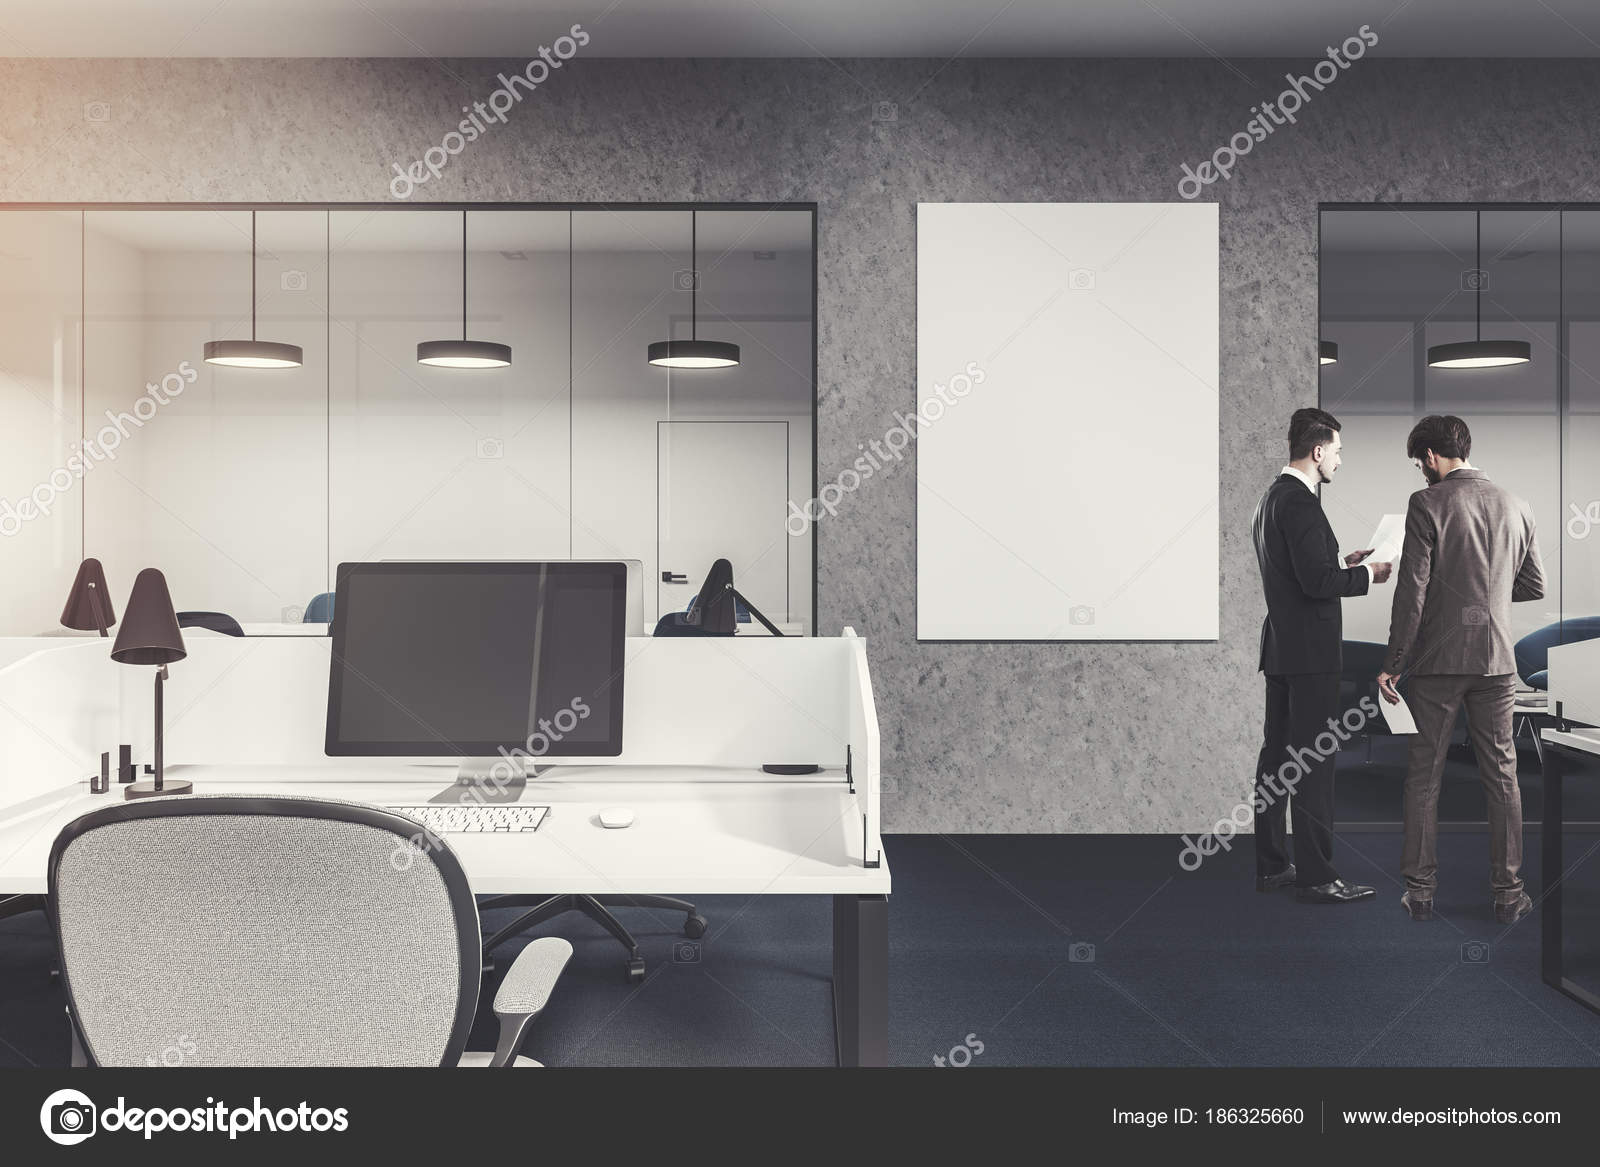 download office desk cubicles design. Delighful Office Computer On An Office Cubicle Desk Gray And Glass Walls With A Large  Vertical Poster A Dark Floor Business People Talking 3d Rendering Mock Up Toned  And Download Office Desk Cubicles Design W